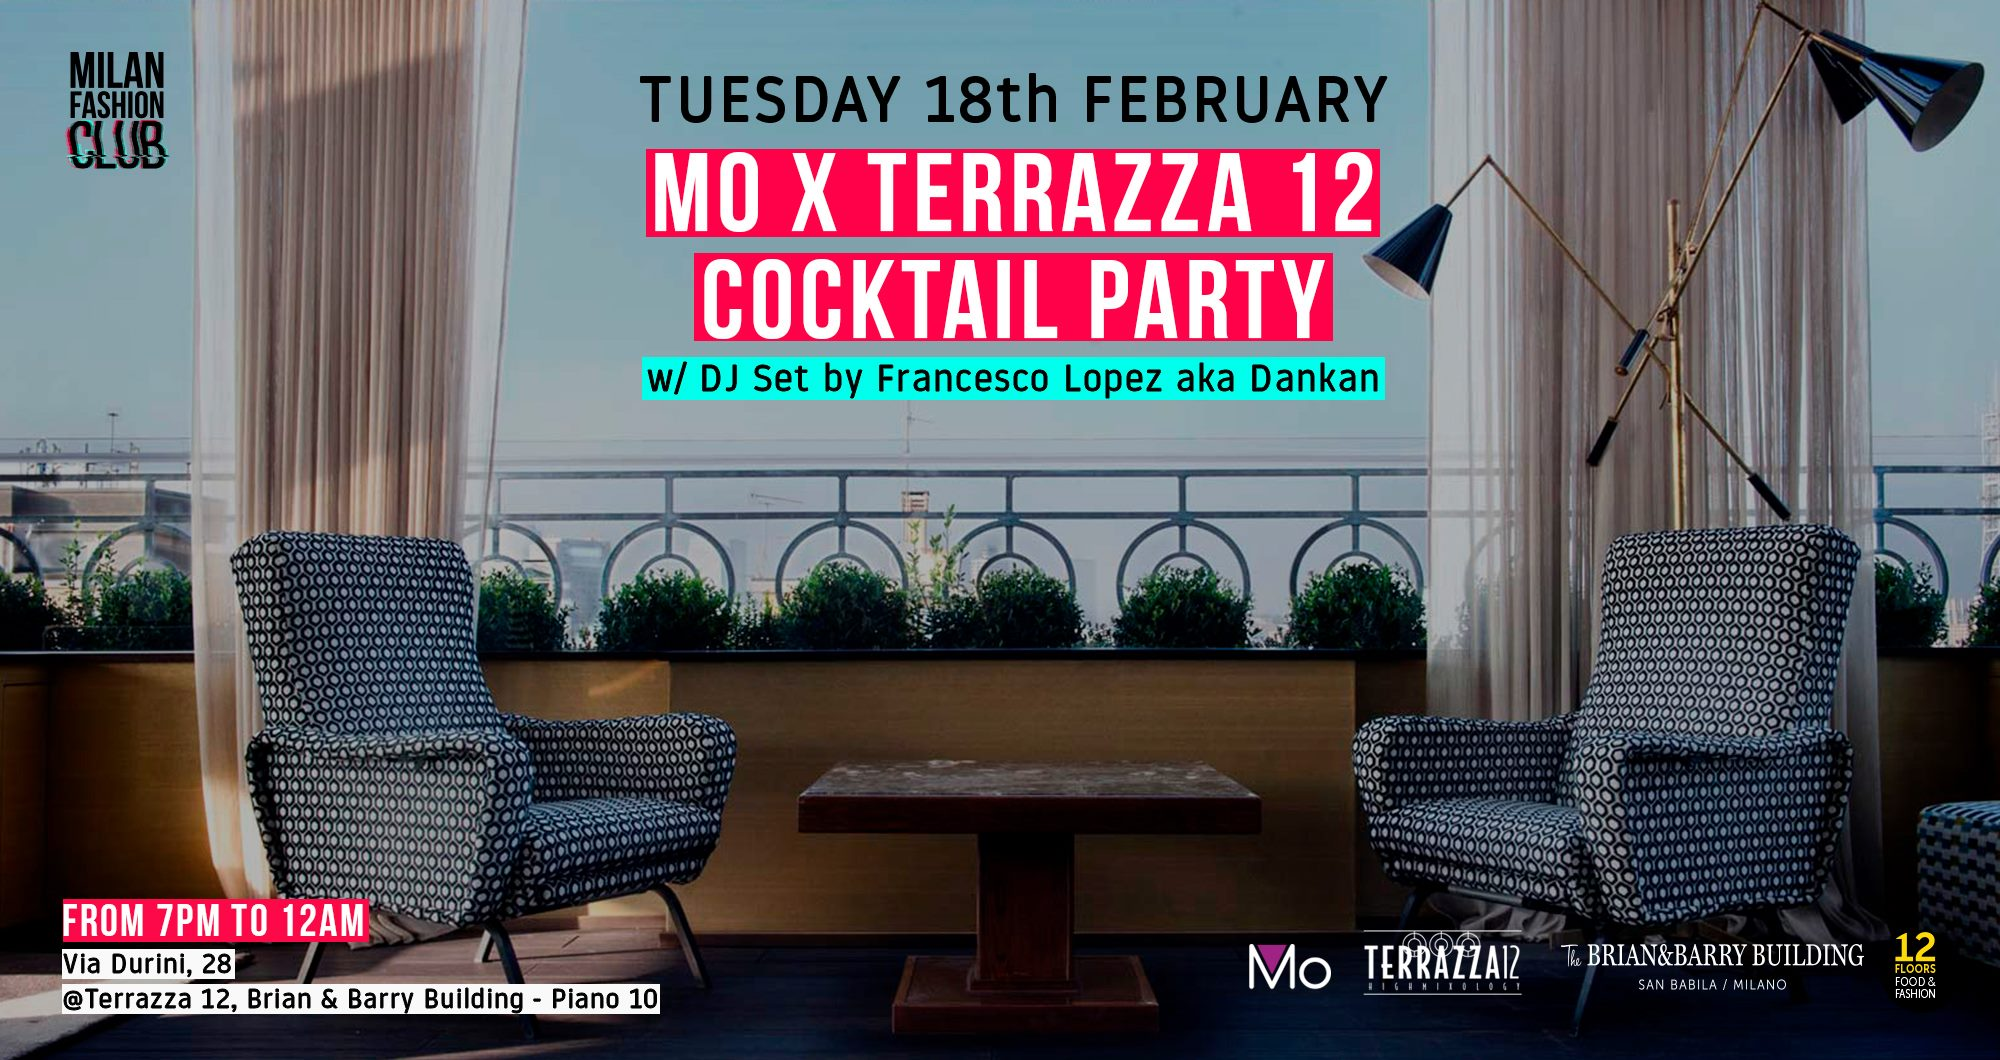 MO x TERRAZZA 12 COCKTAIL PARTY | Milan Fashion Week YOUparti